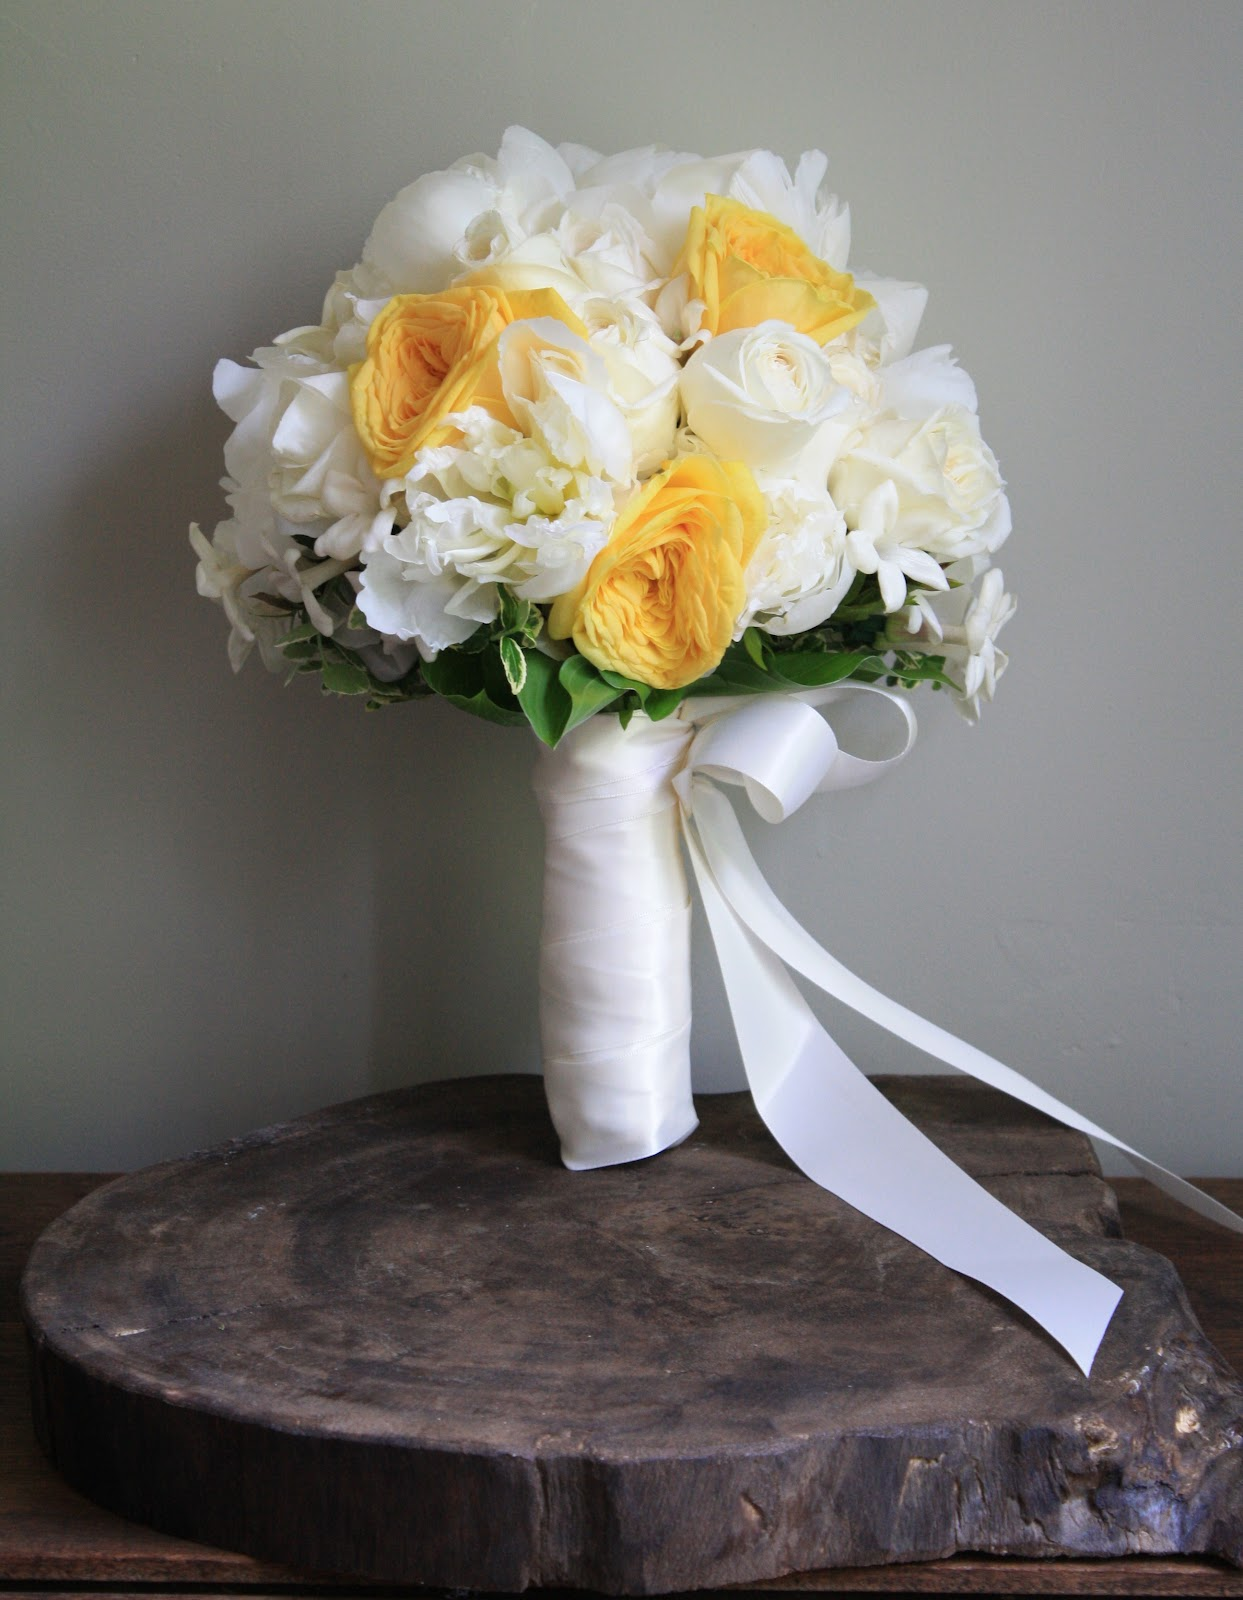 Yellow Garden Rose and Peony Wedding Bouquet - fluffy white peonies, yellow garden roses, and stephanotis